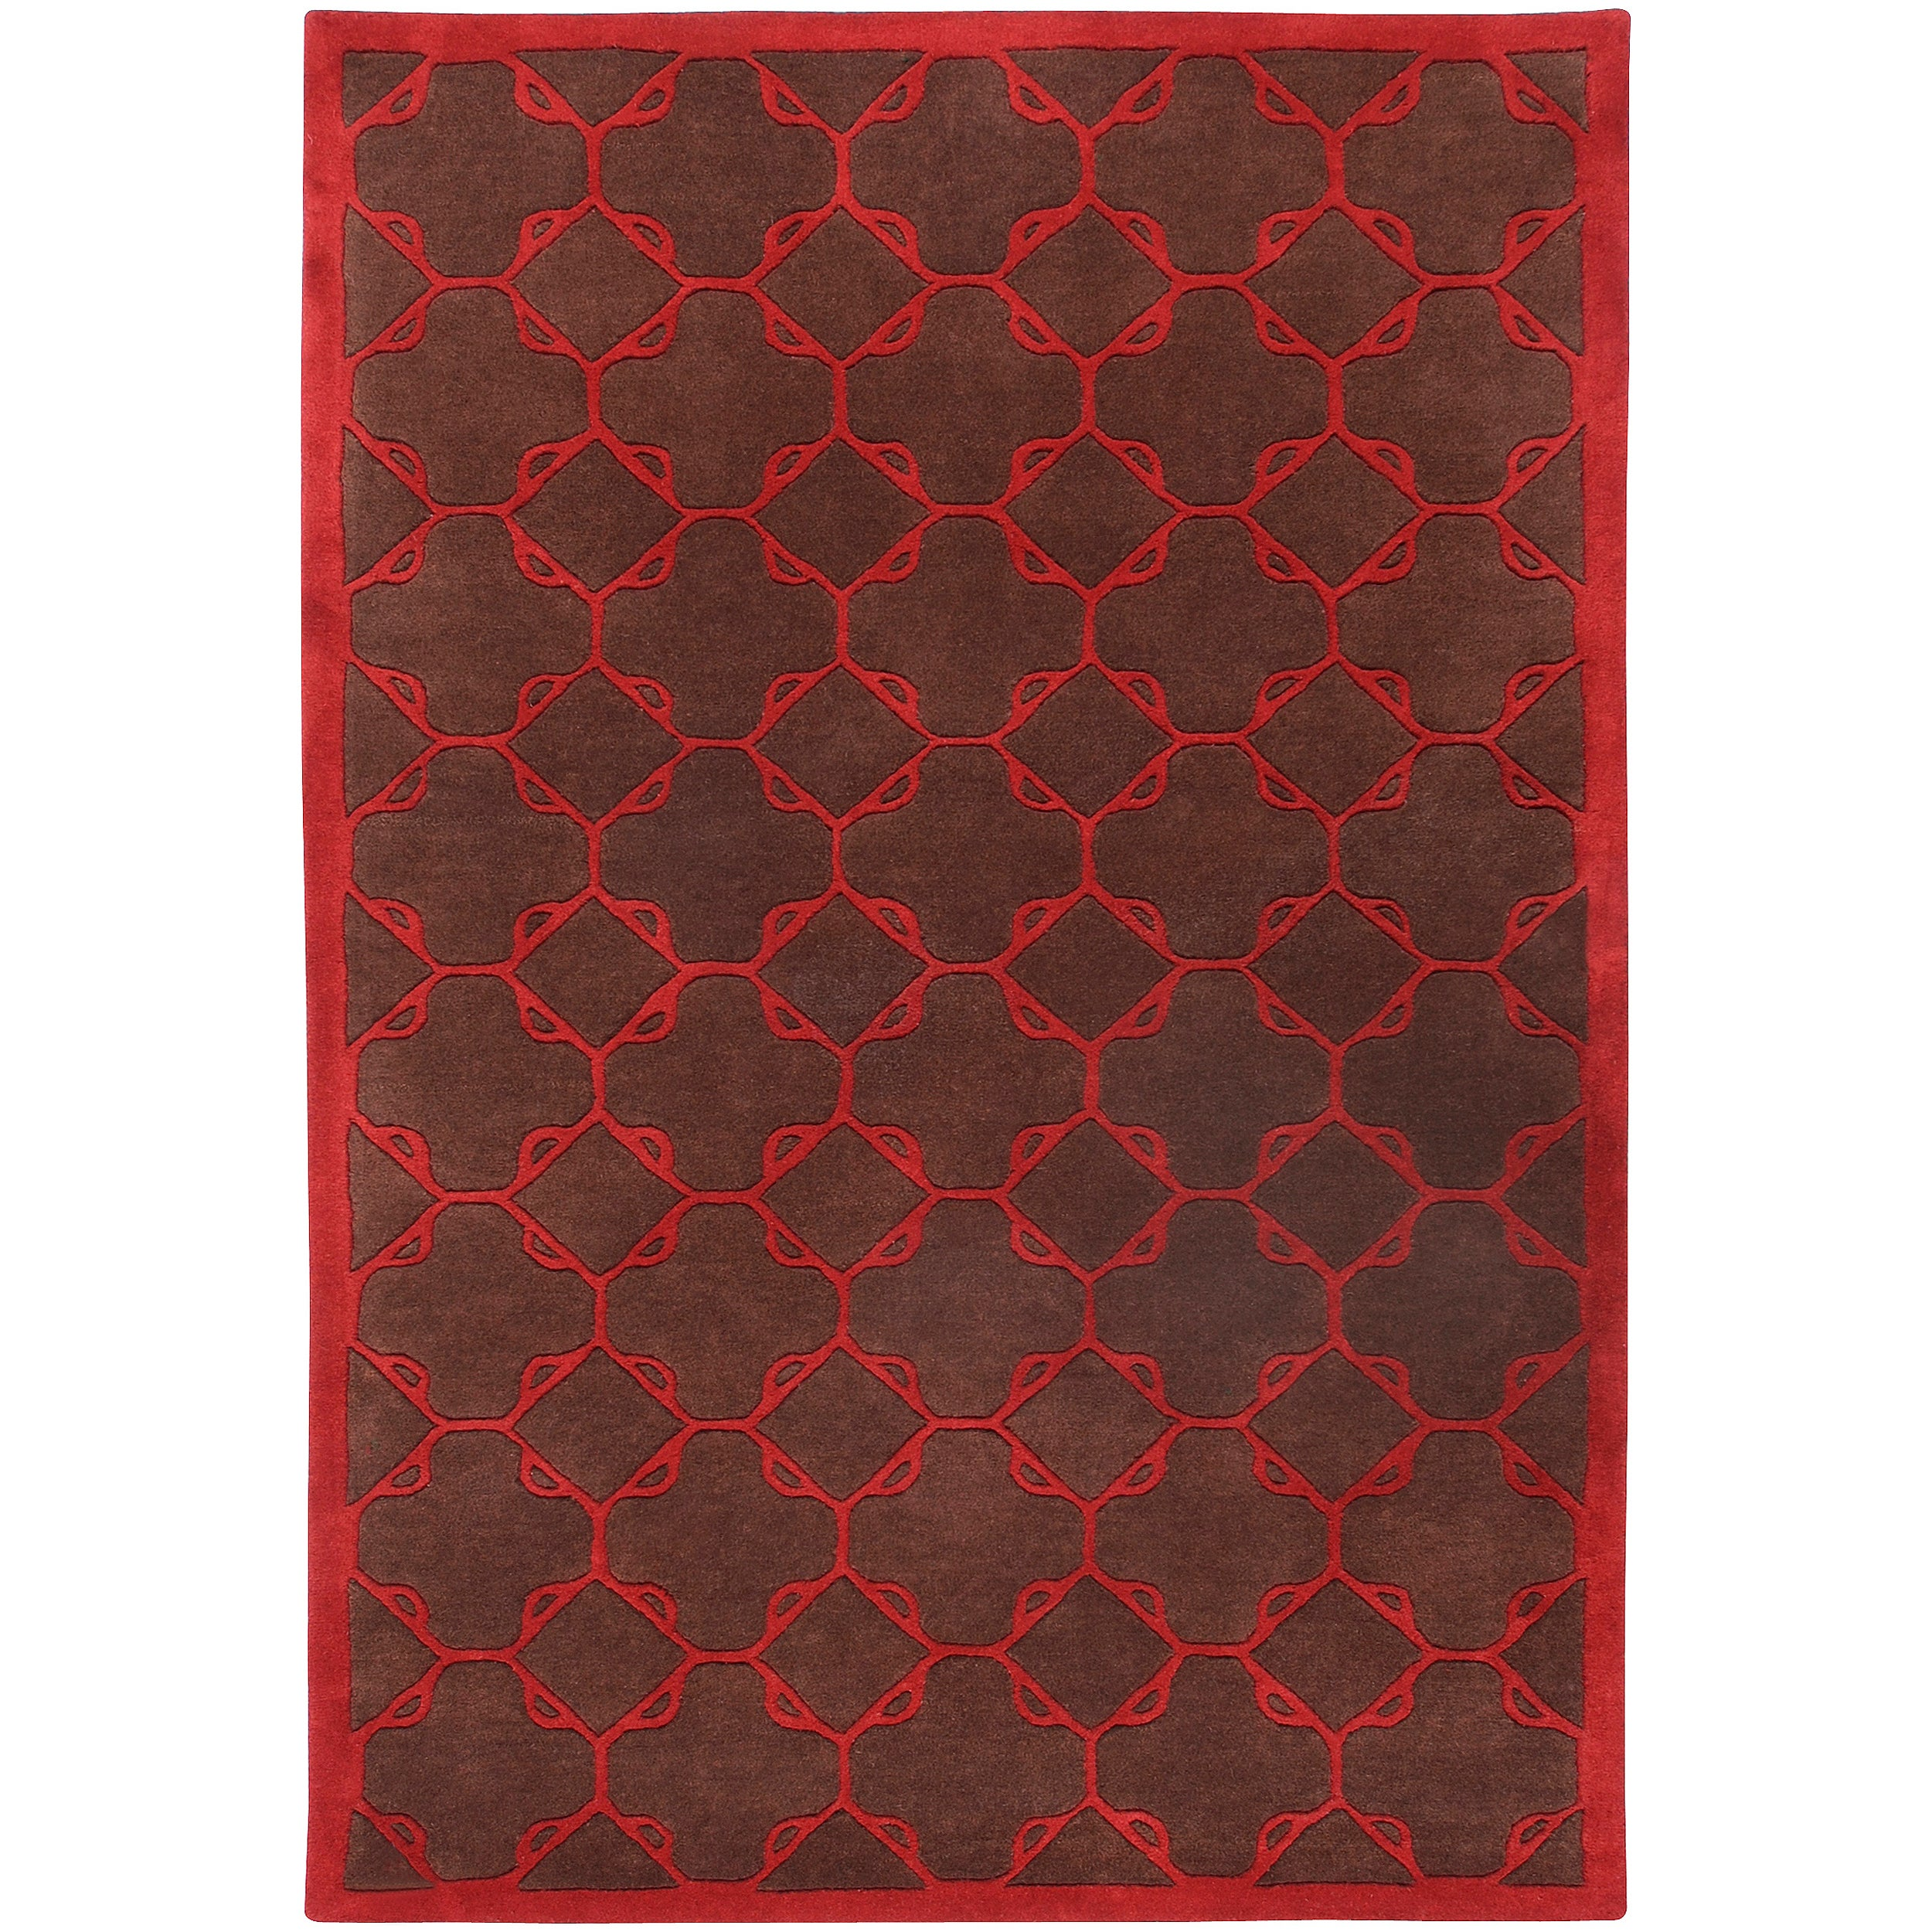 Hand-tufted Contemporary Brown/Red Floral Leyton New Zealand Wool Geometric Rug (5' x 8')